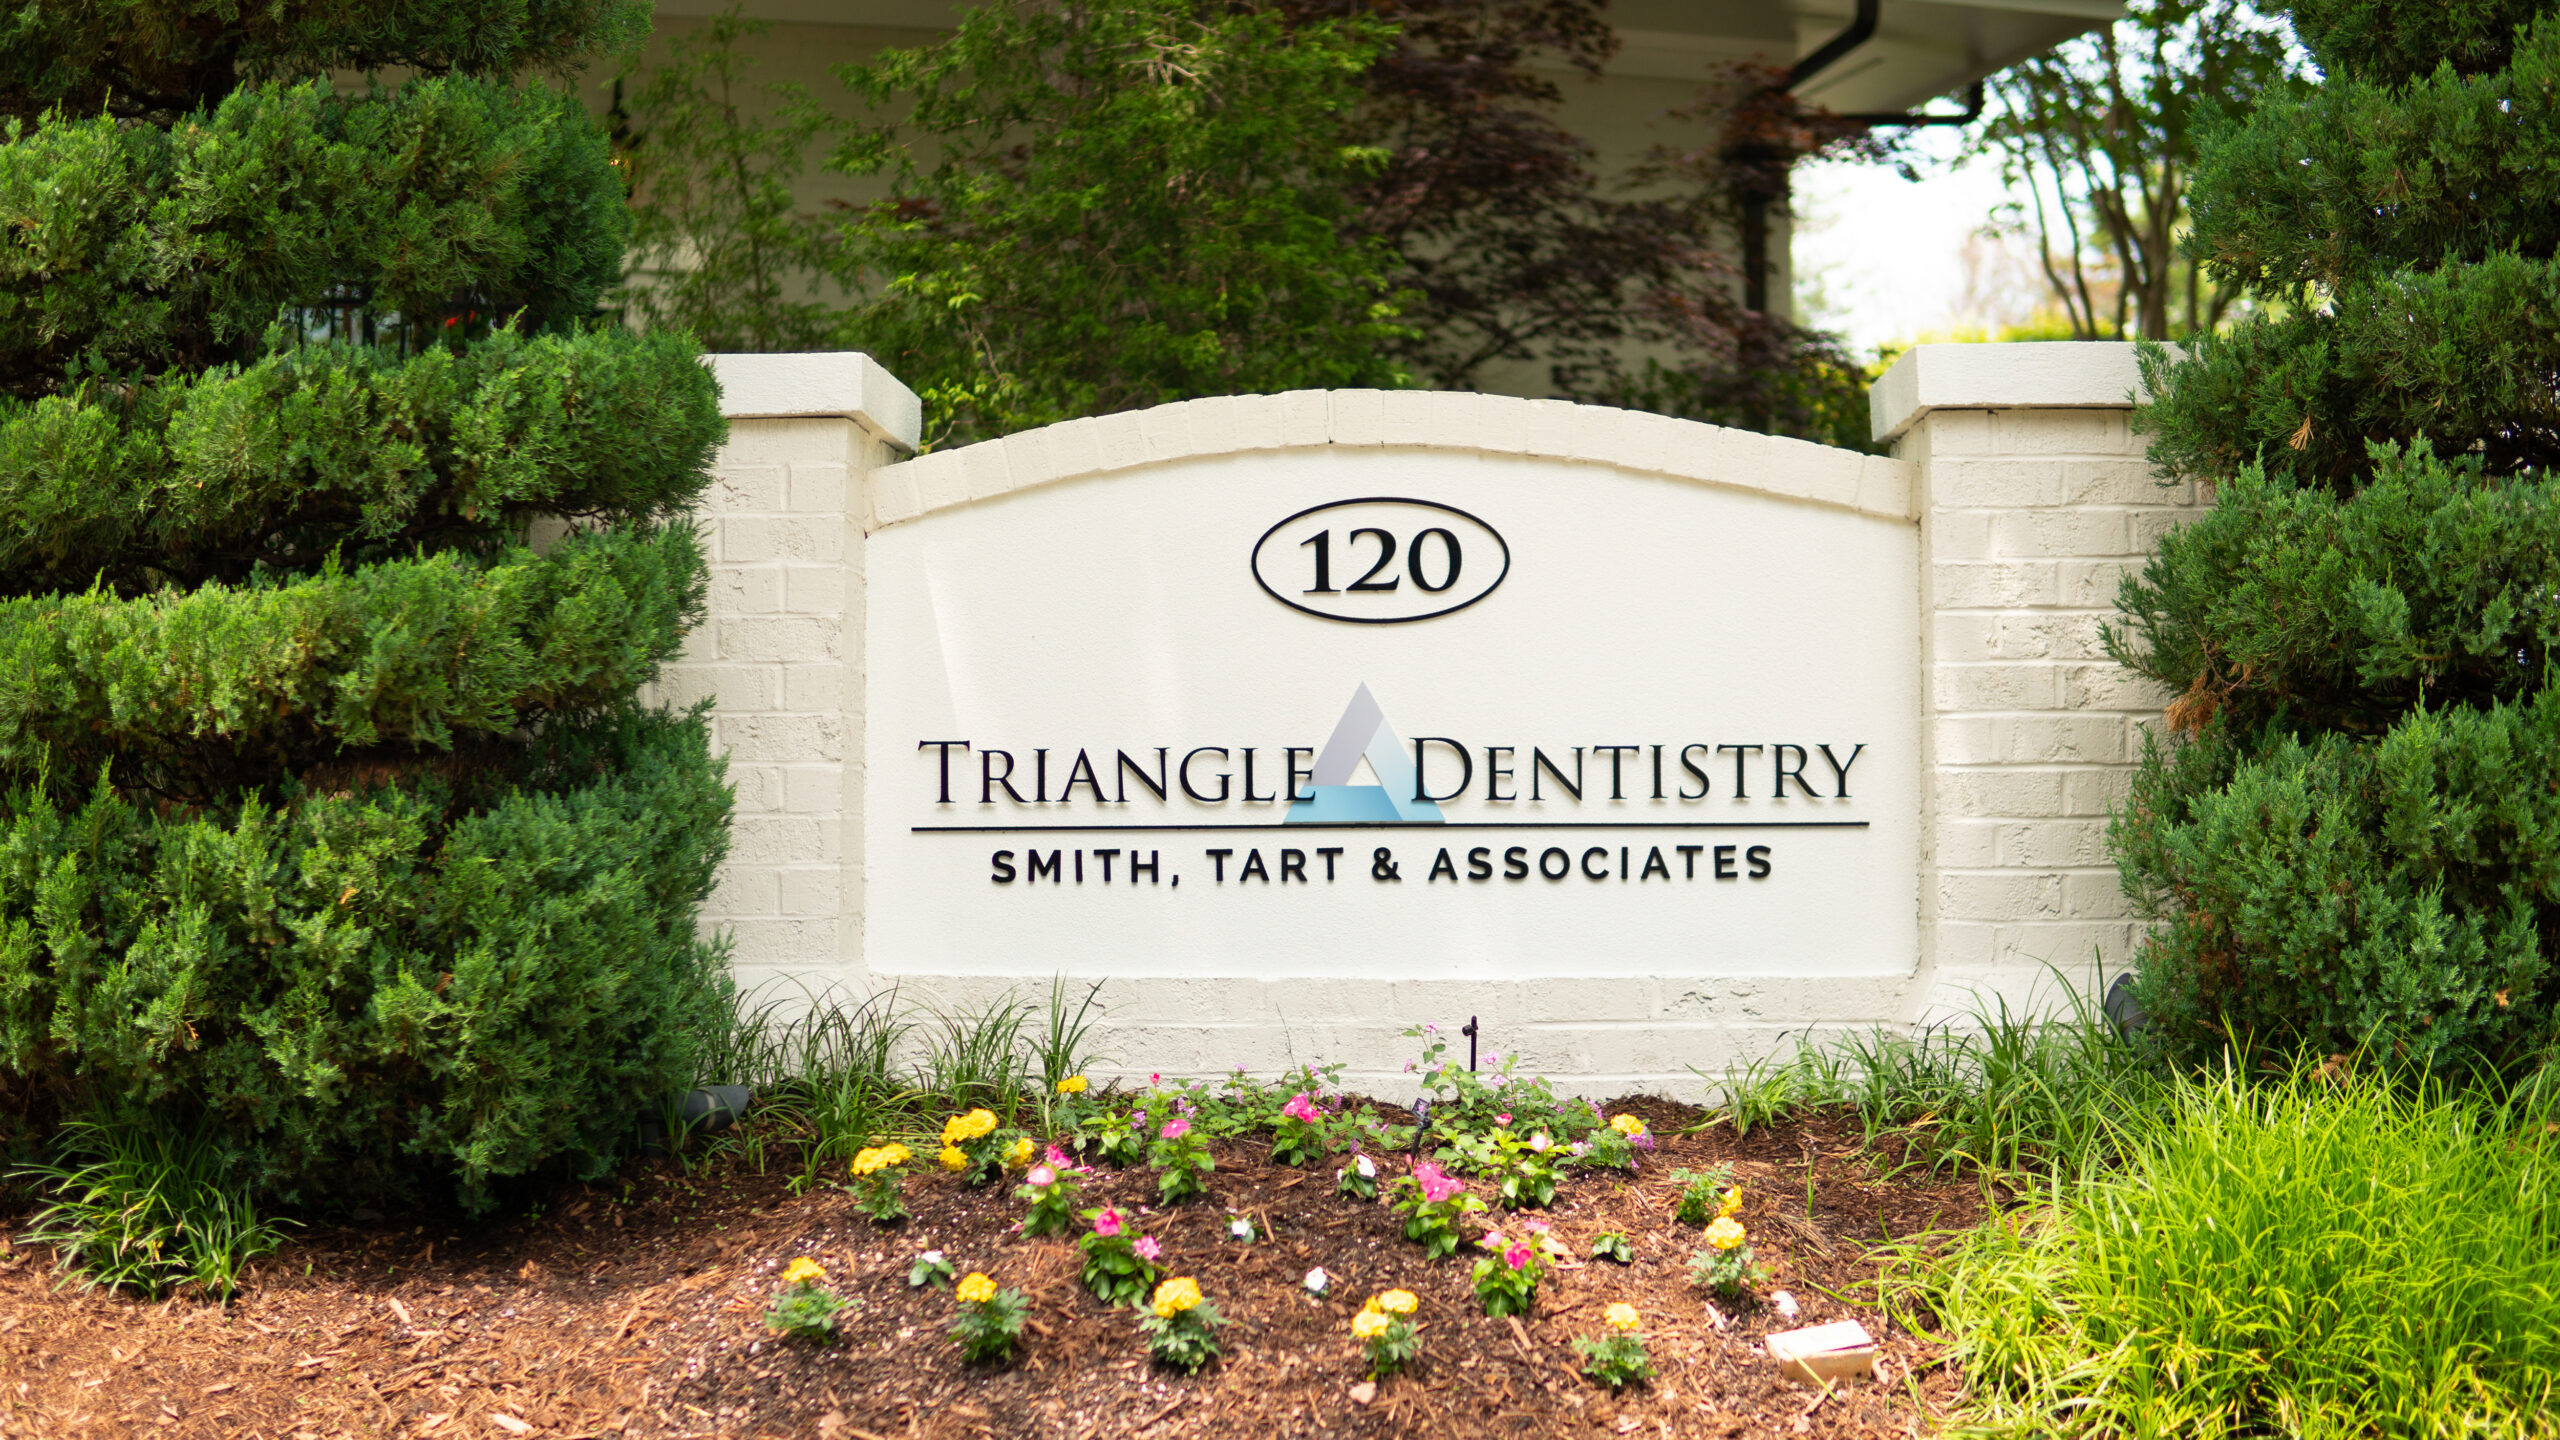 North Raleigh Dentist Office Triangle Dentistry Smith Tart